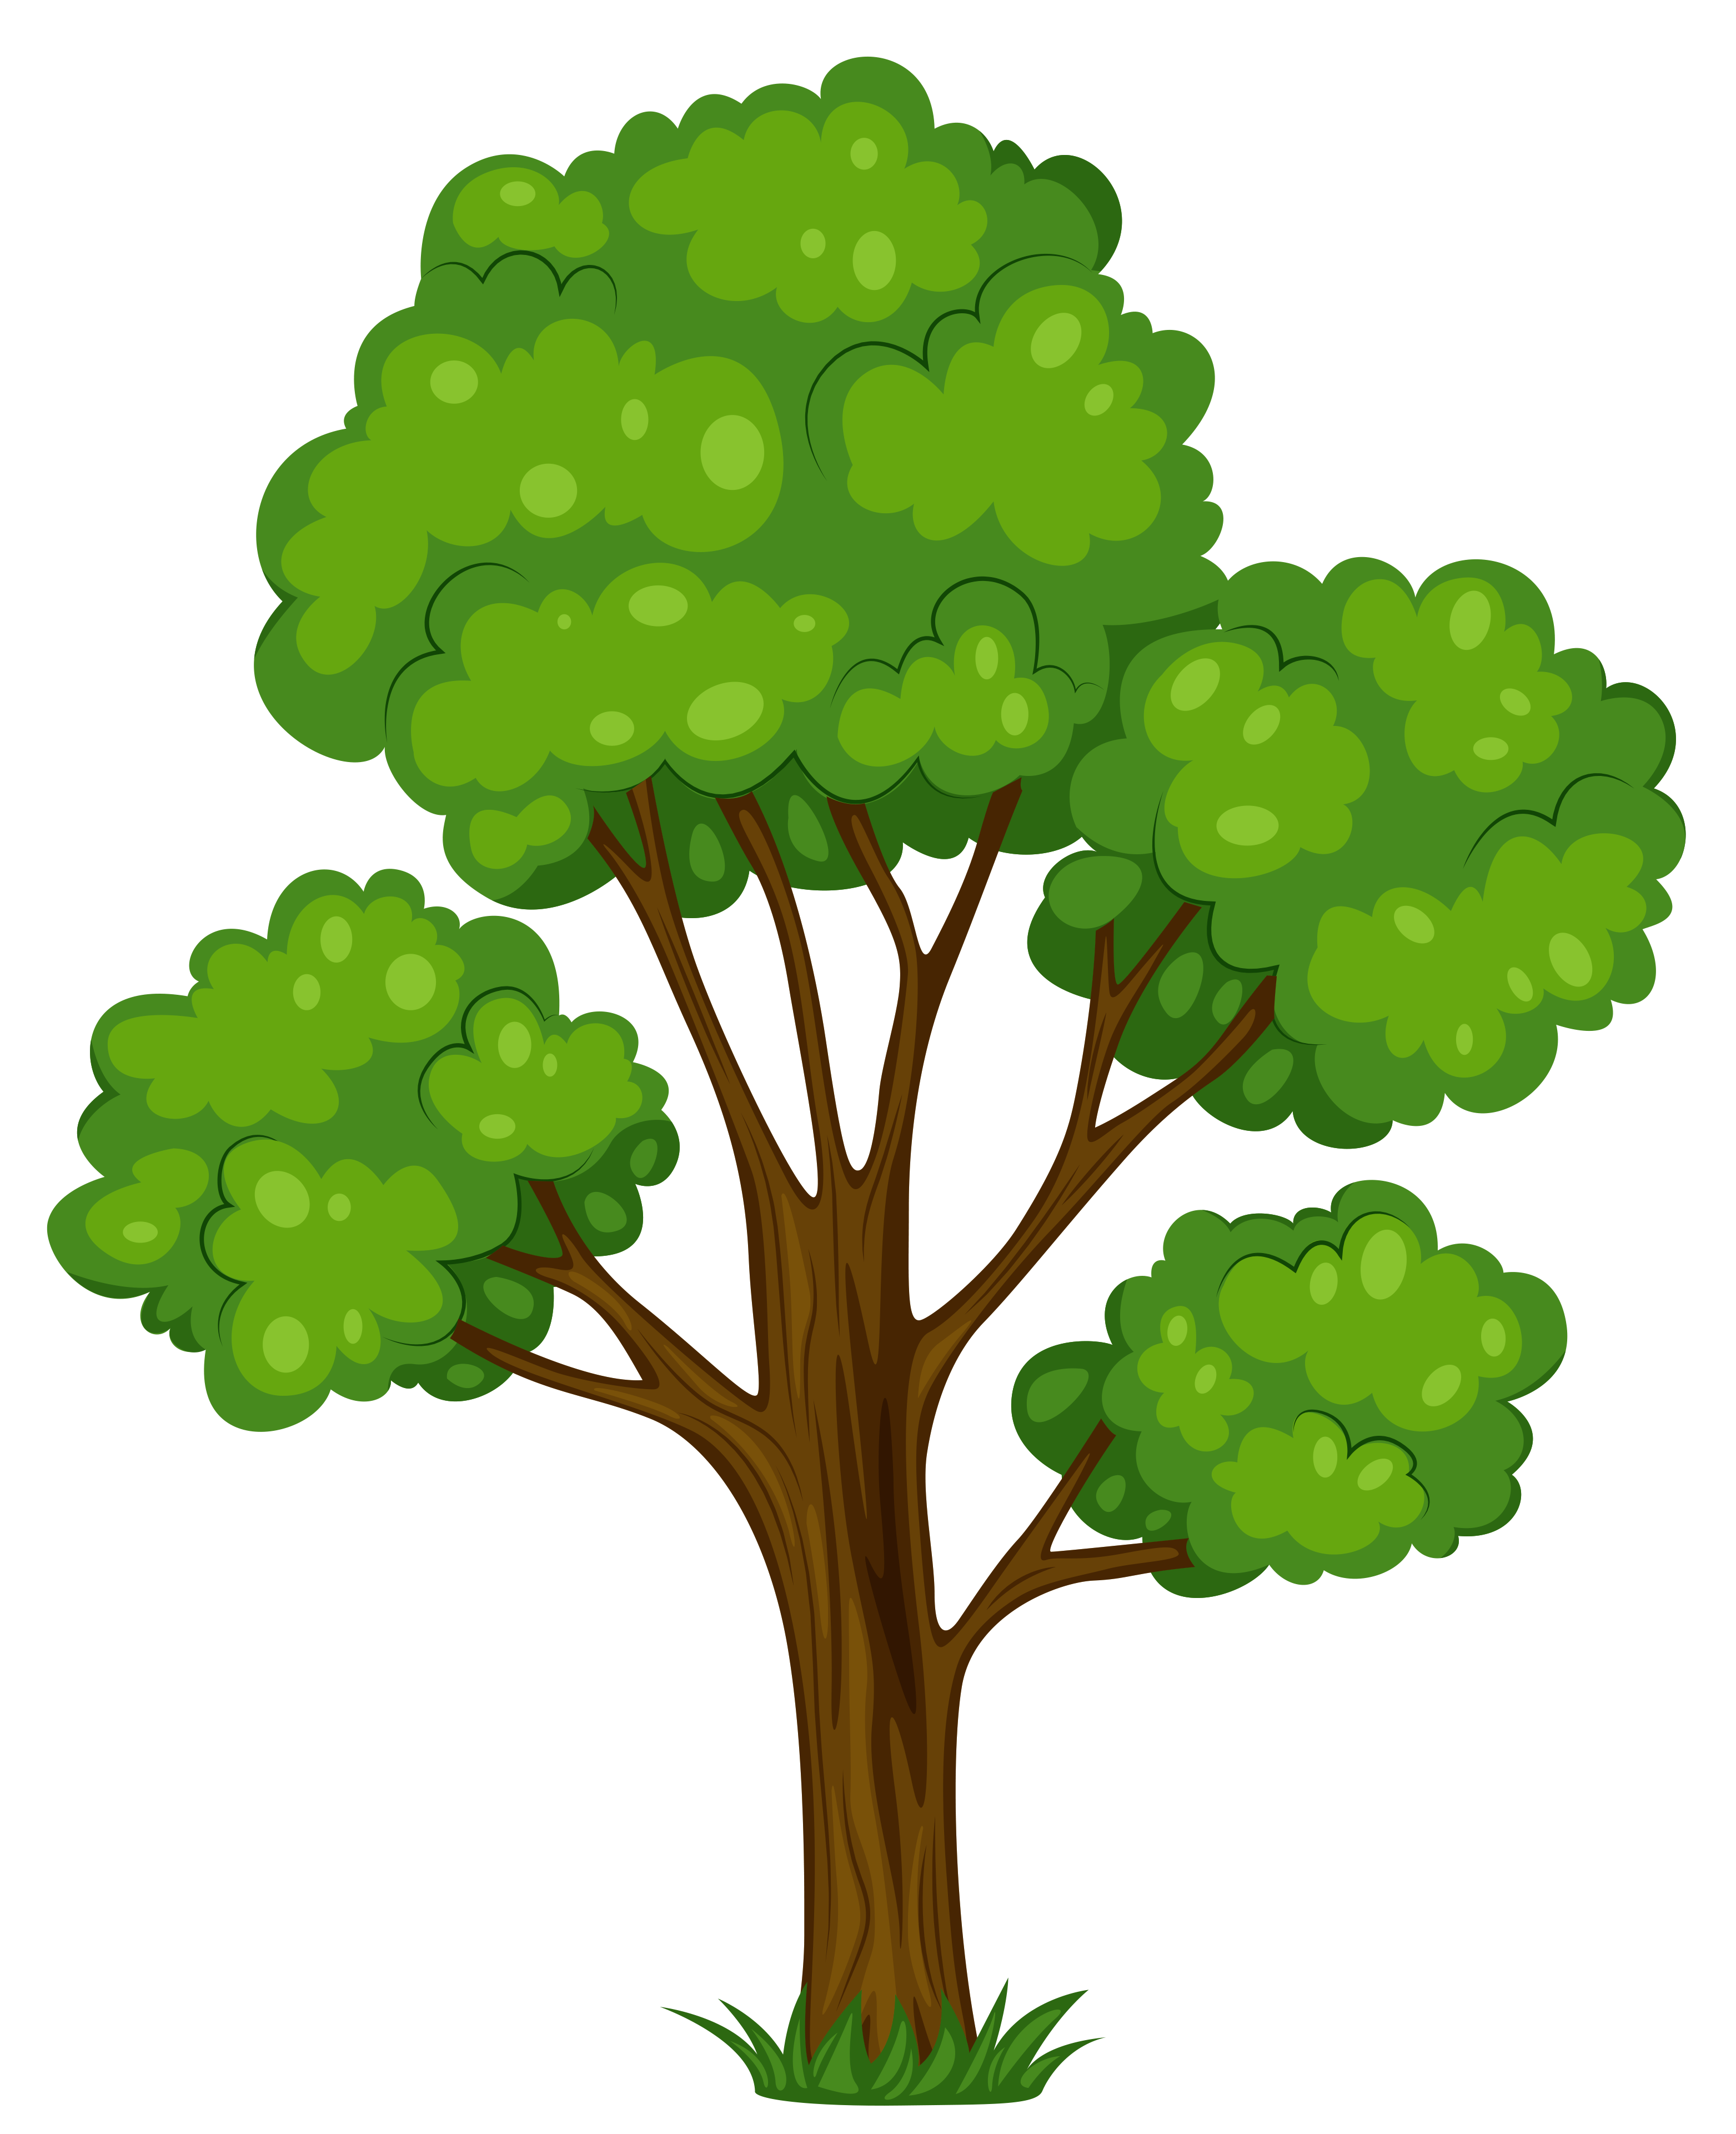 Tree clipart #4, Download drawings